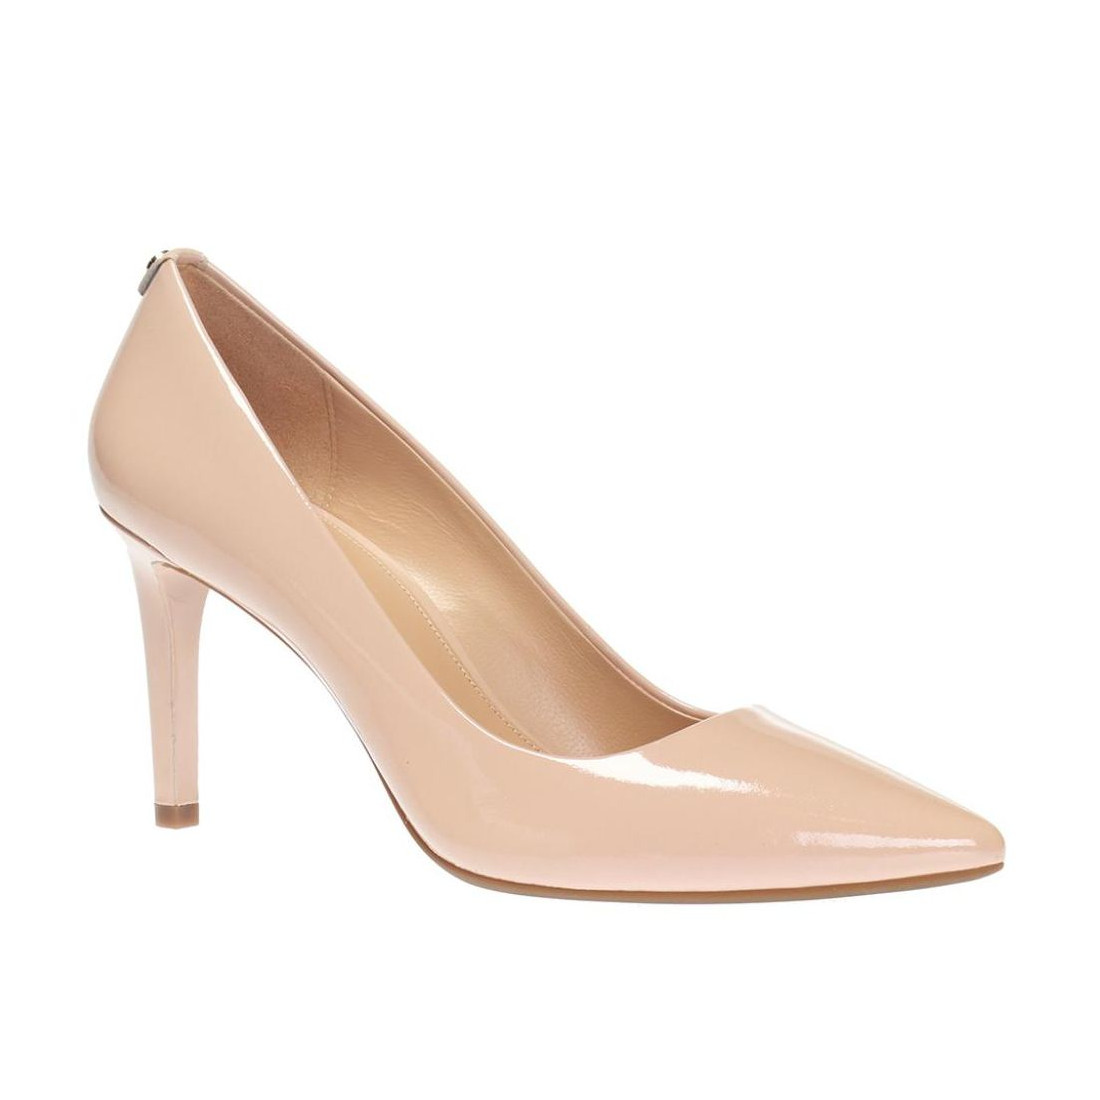 pumps woman michael kors 40f6domp1a660 4277